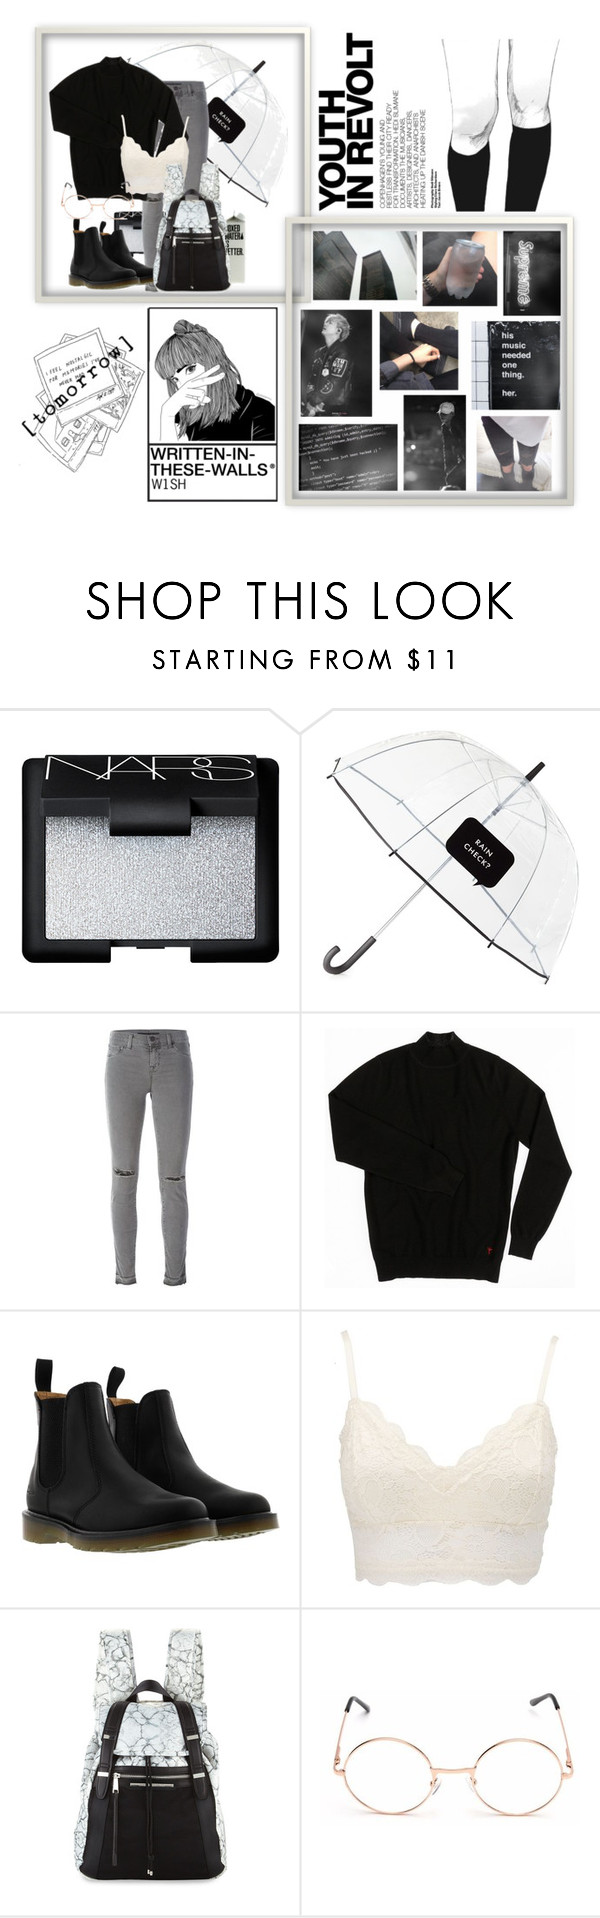 """""""•Yesterday is Today, Today is Yesterday•"""" by daydreaminginthedark ❤ liked on Polyvore featuring NARS Cosmetics, Kate Spade, J Brand, Dr. Martens, Charlotte Russe, Hedi Slimane and French Connection"""